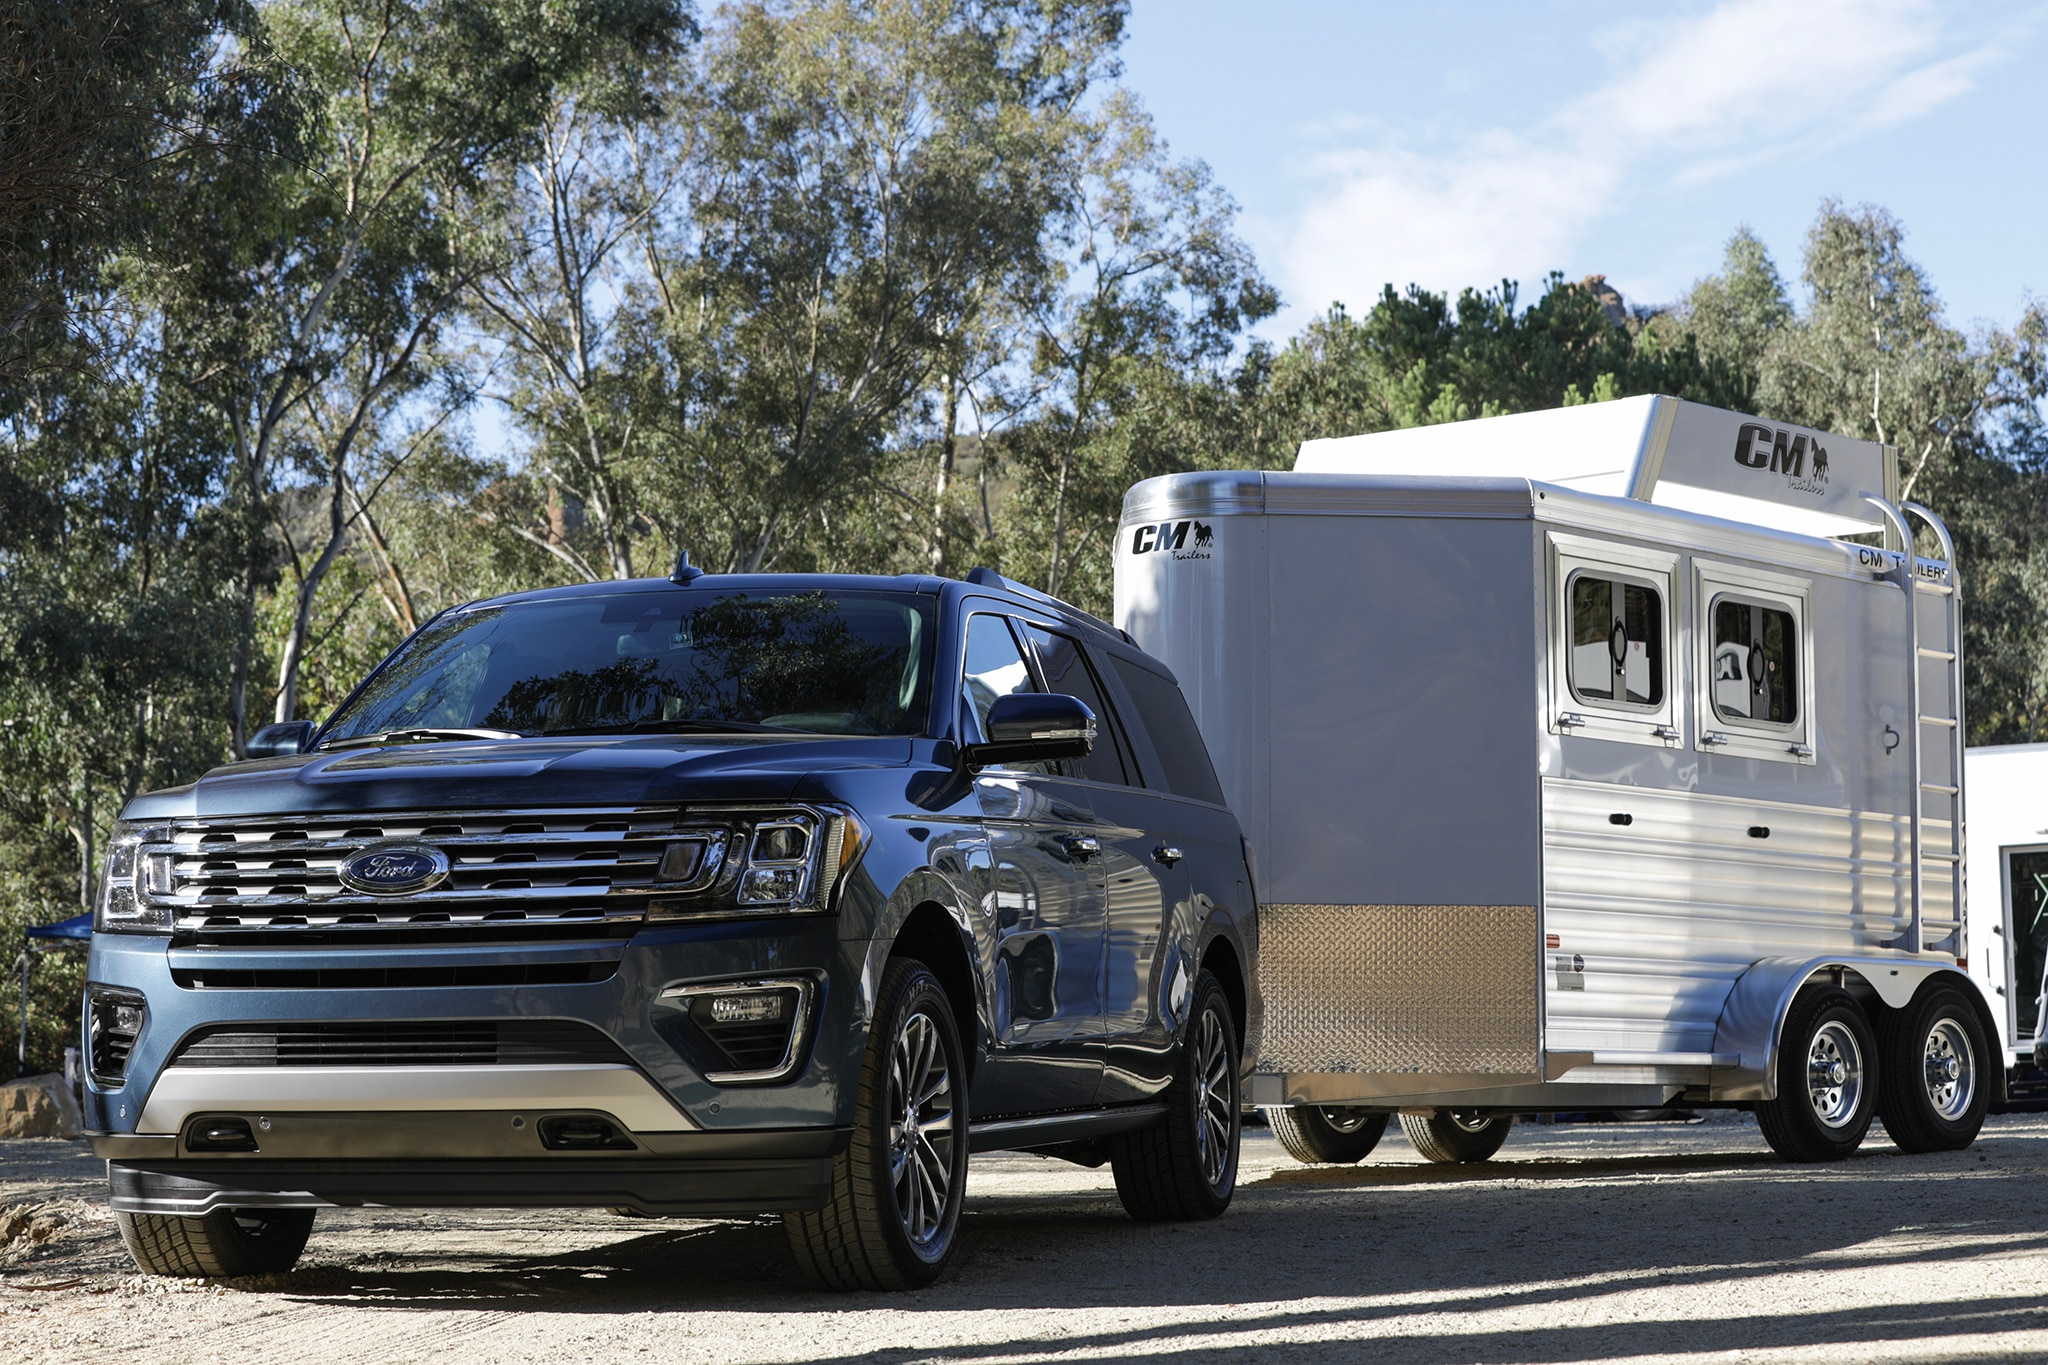 2018 Ford Expedition First Drive | Automobile Magazine